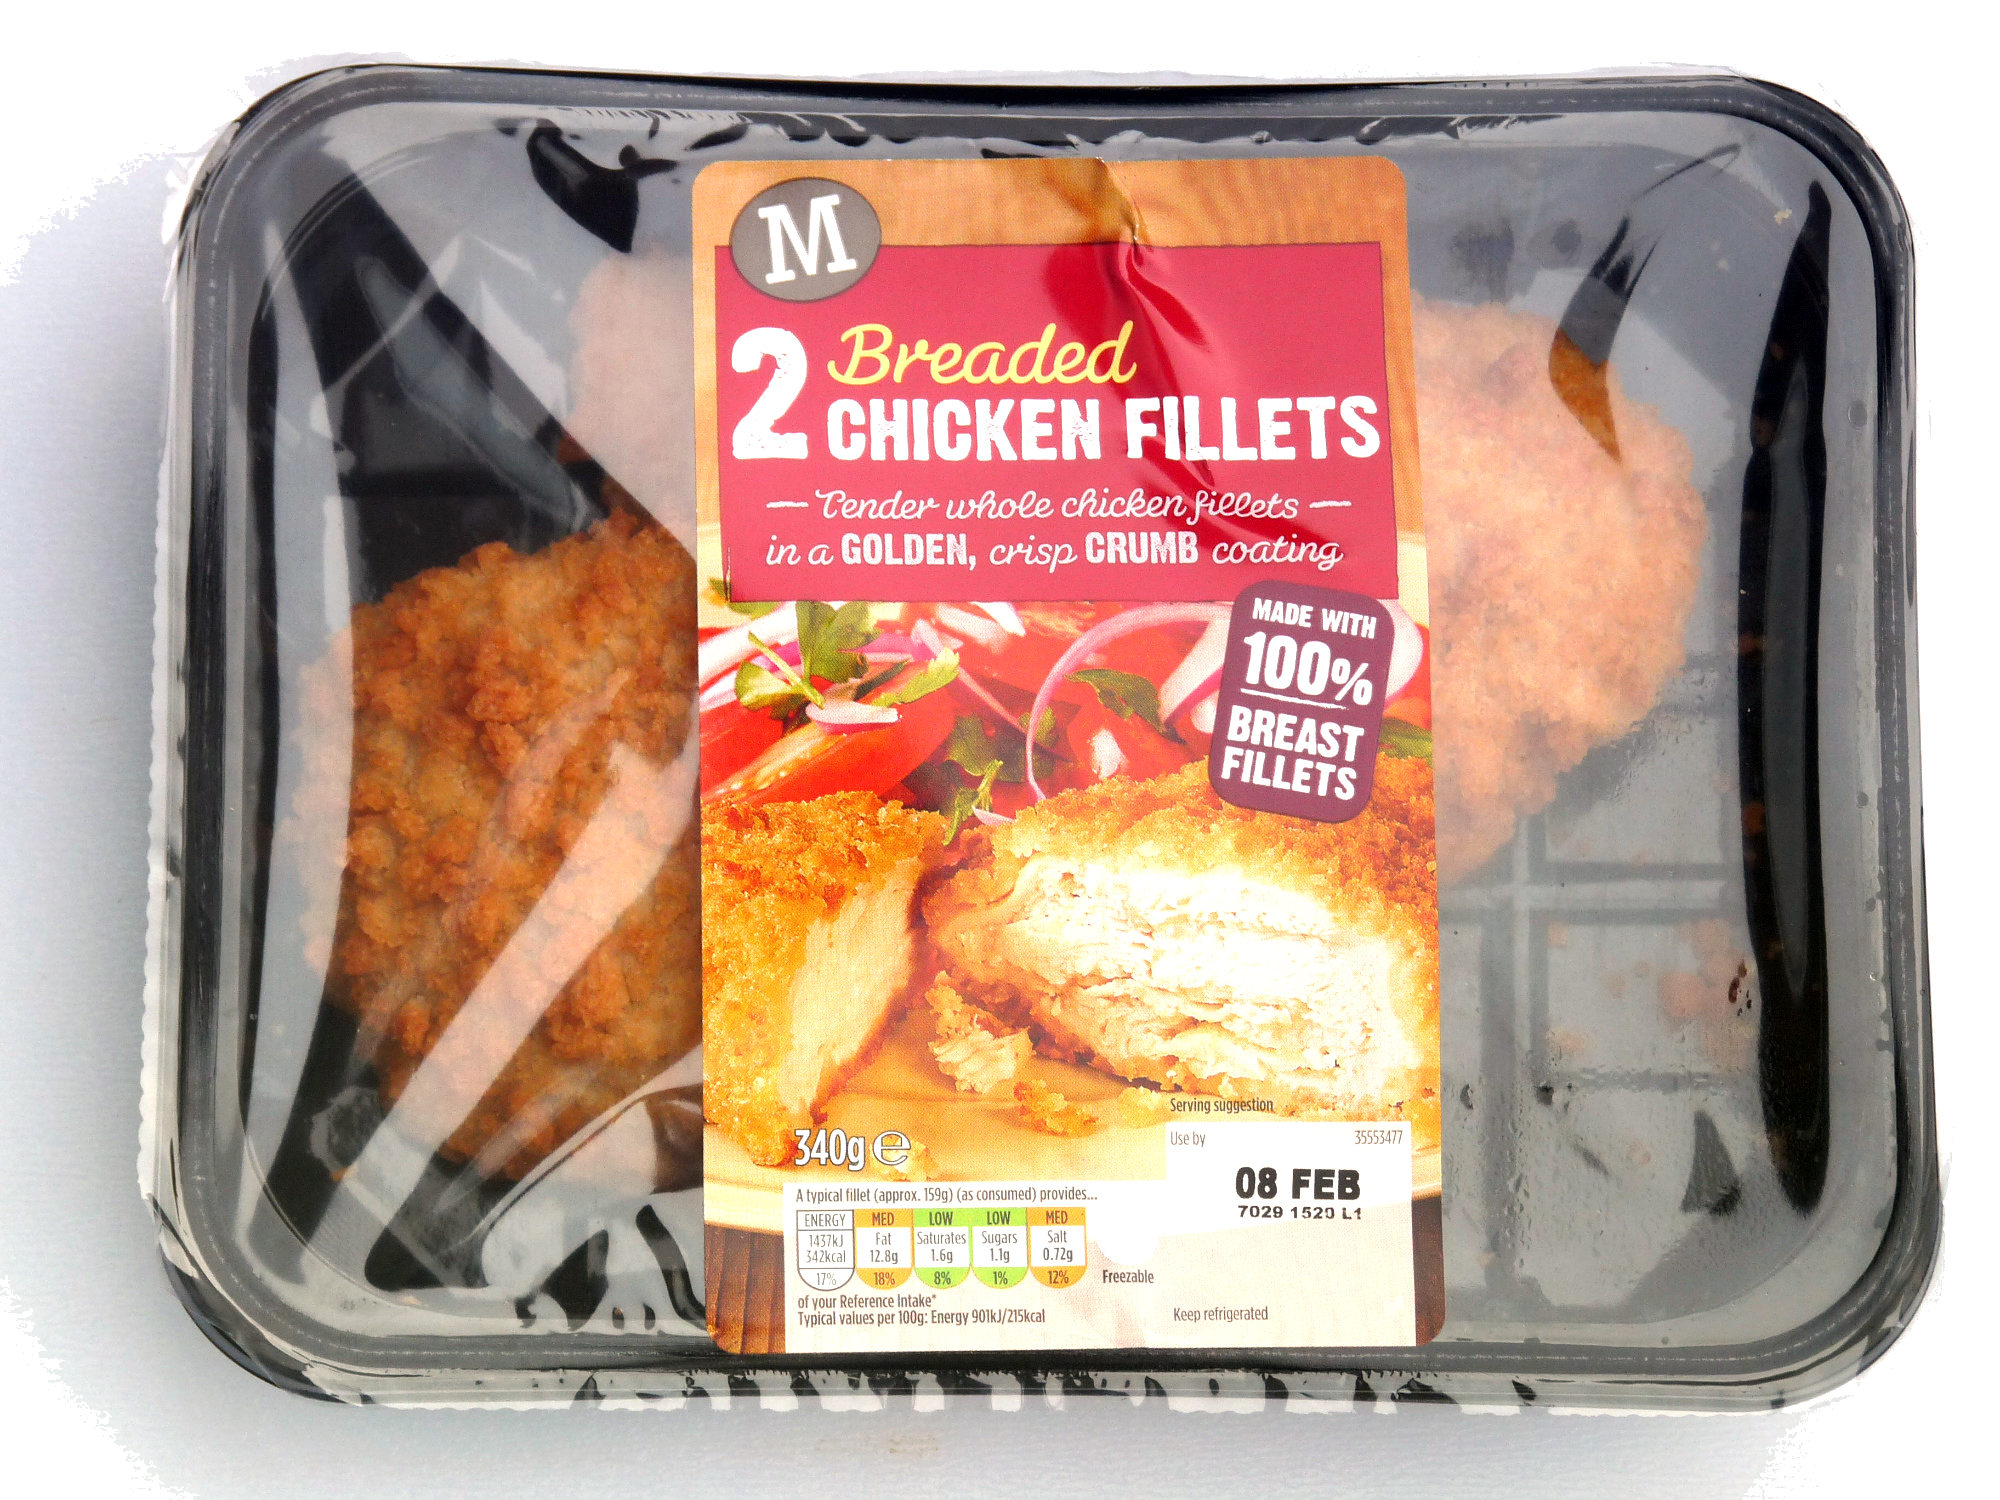 Morrisons Breaded Chicken Fillets - Product